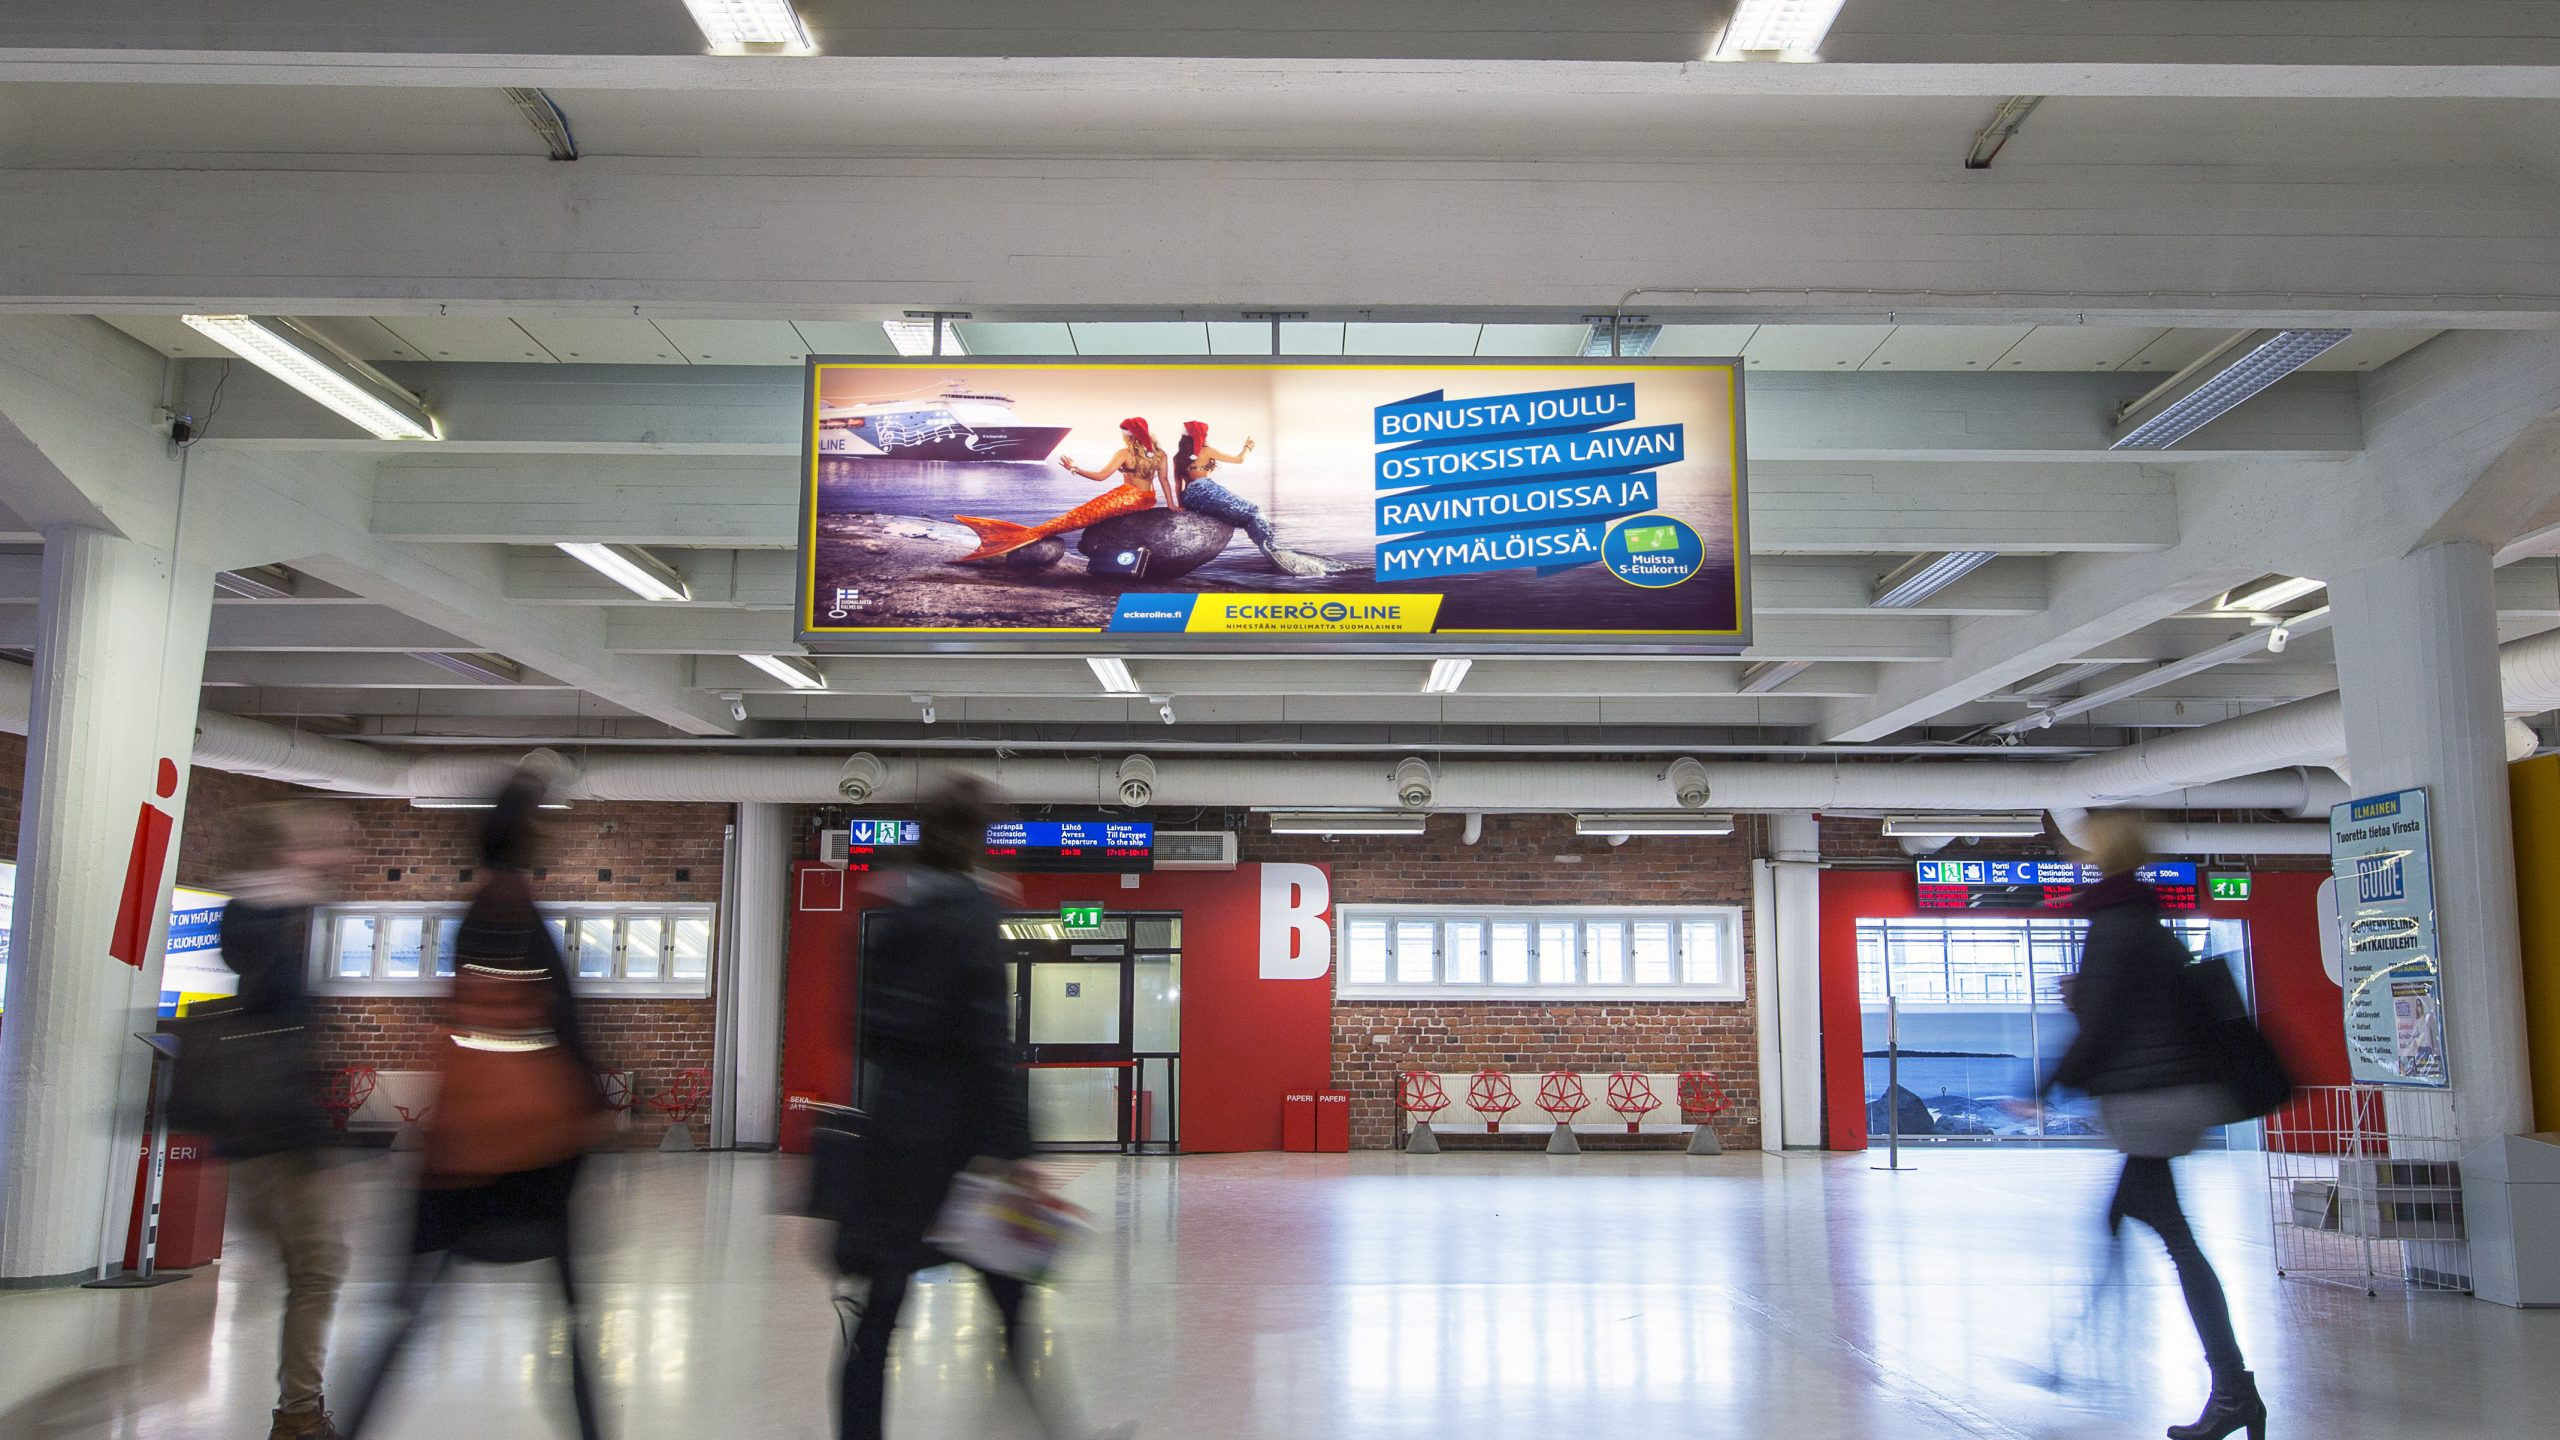 Ports - West Terminal T1 Lightboxes